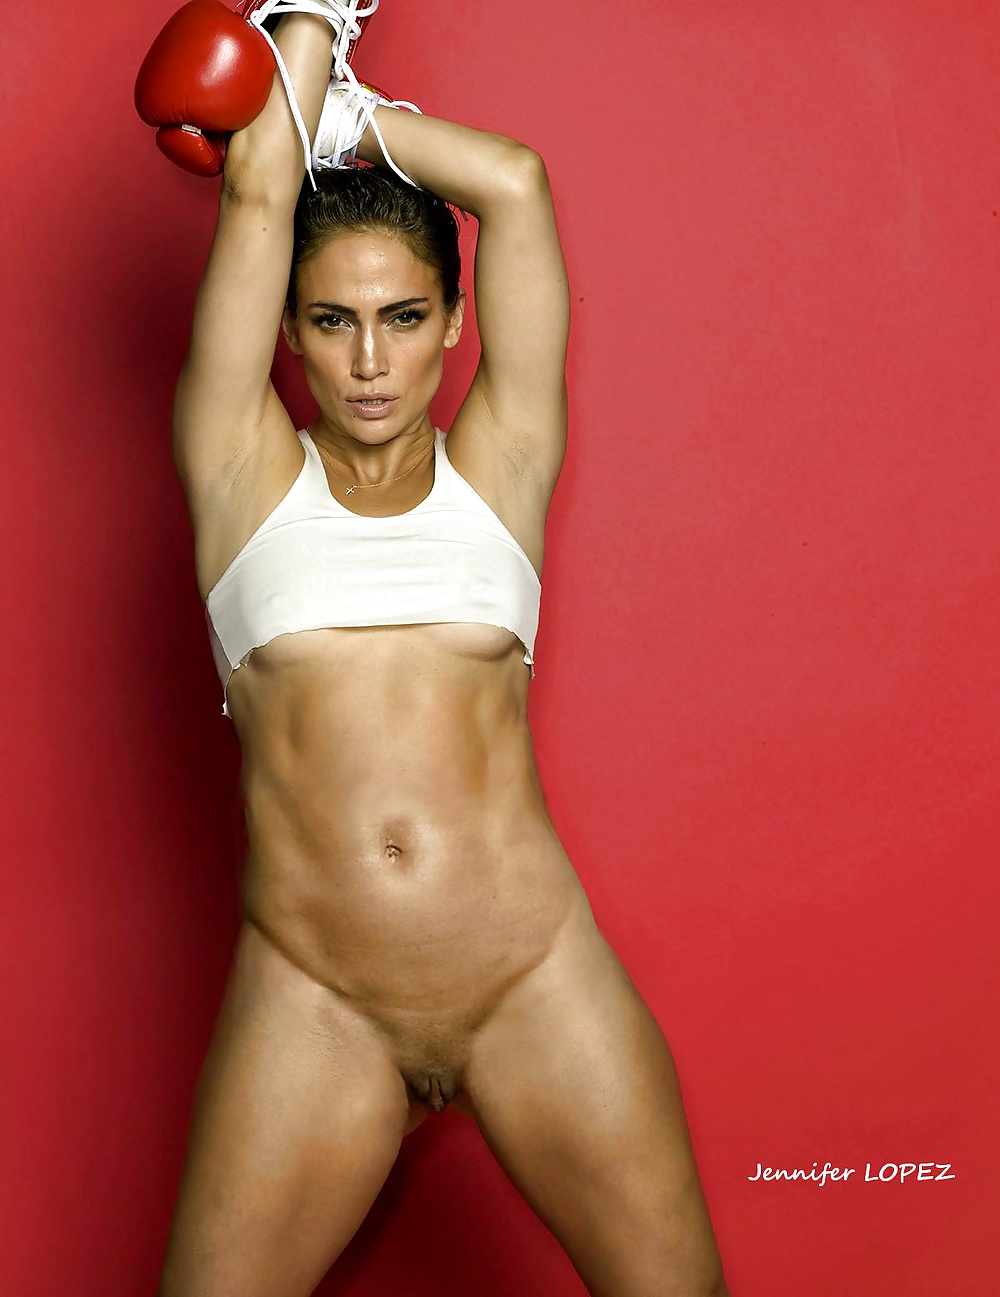 jennifer-lopez-nude-images-scandal-free-karola-boobs-galleries